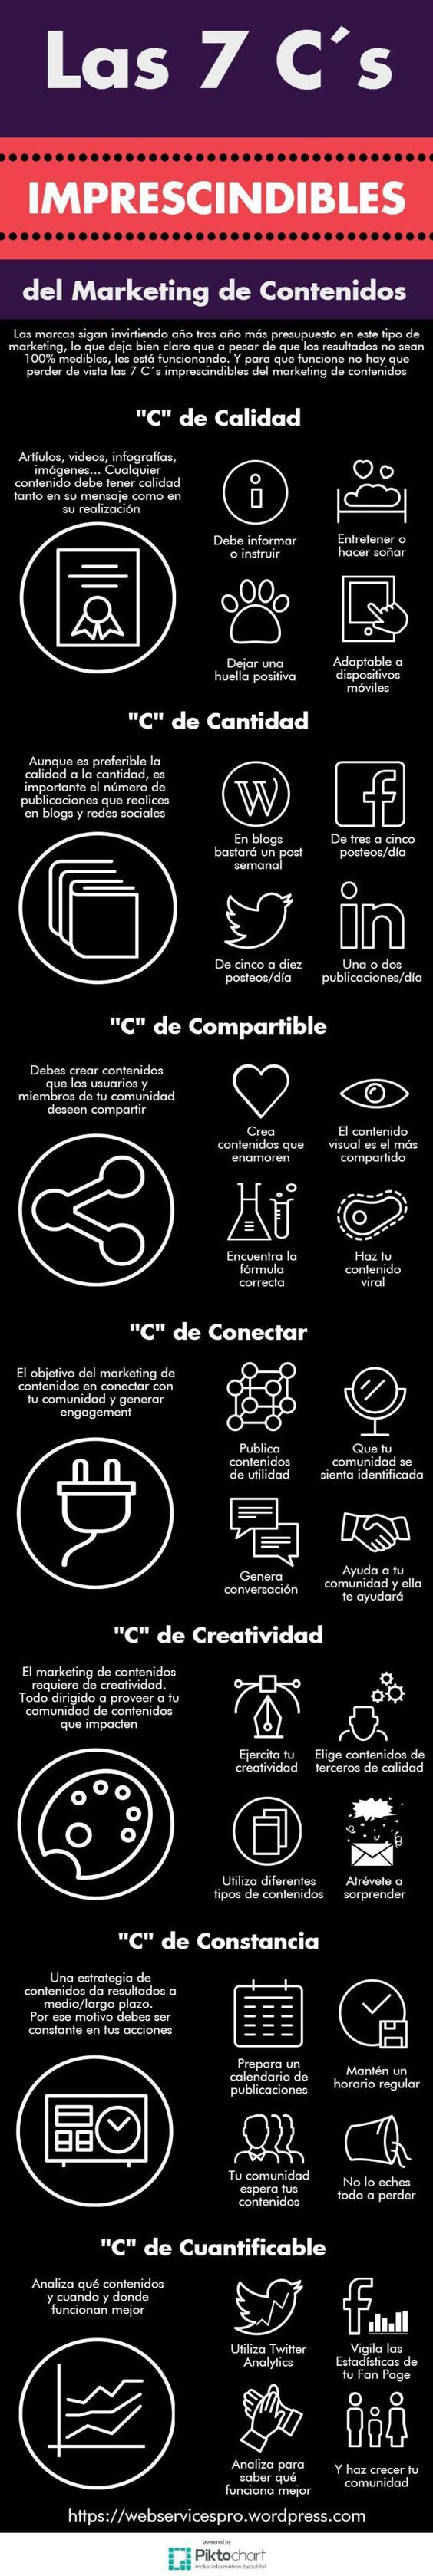 "Las 7 ""C"" imprescindibles del marketing de contenidos."